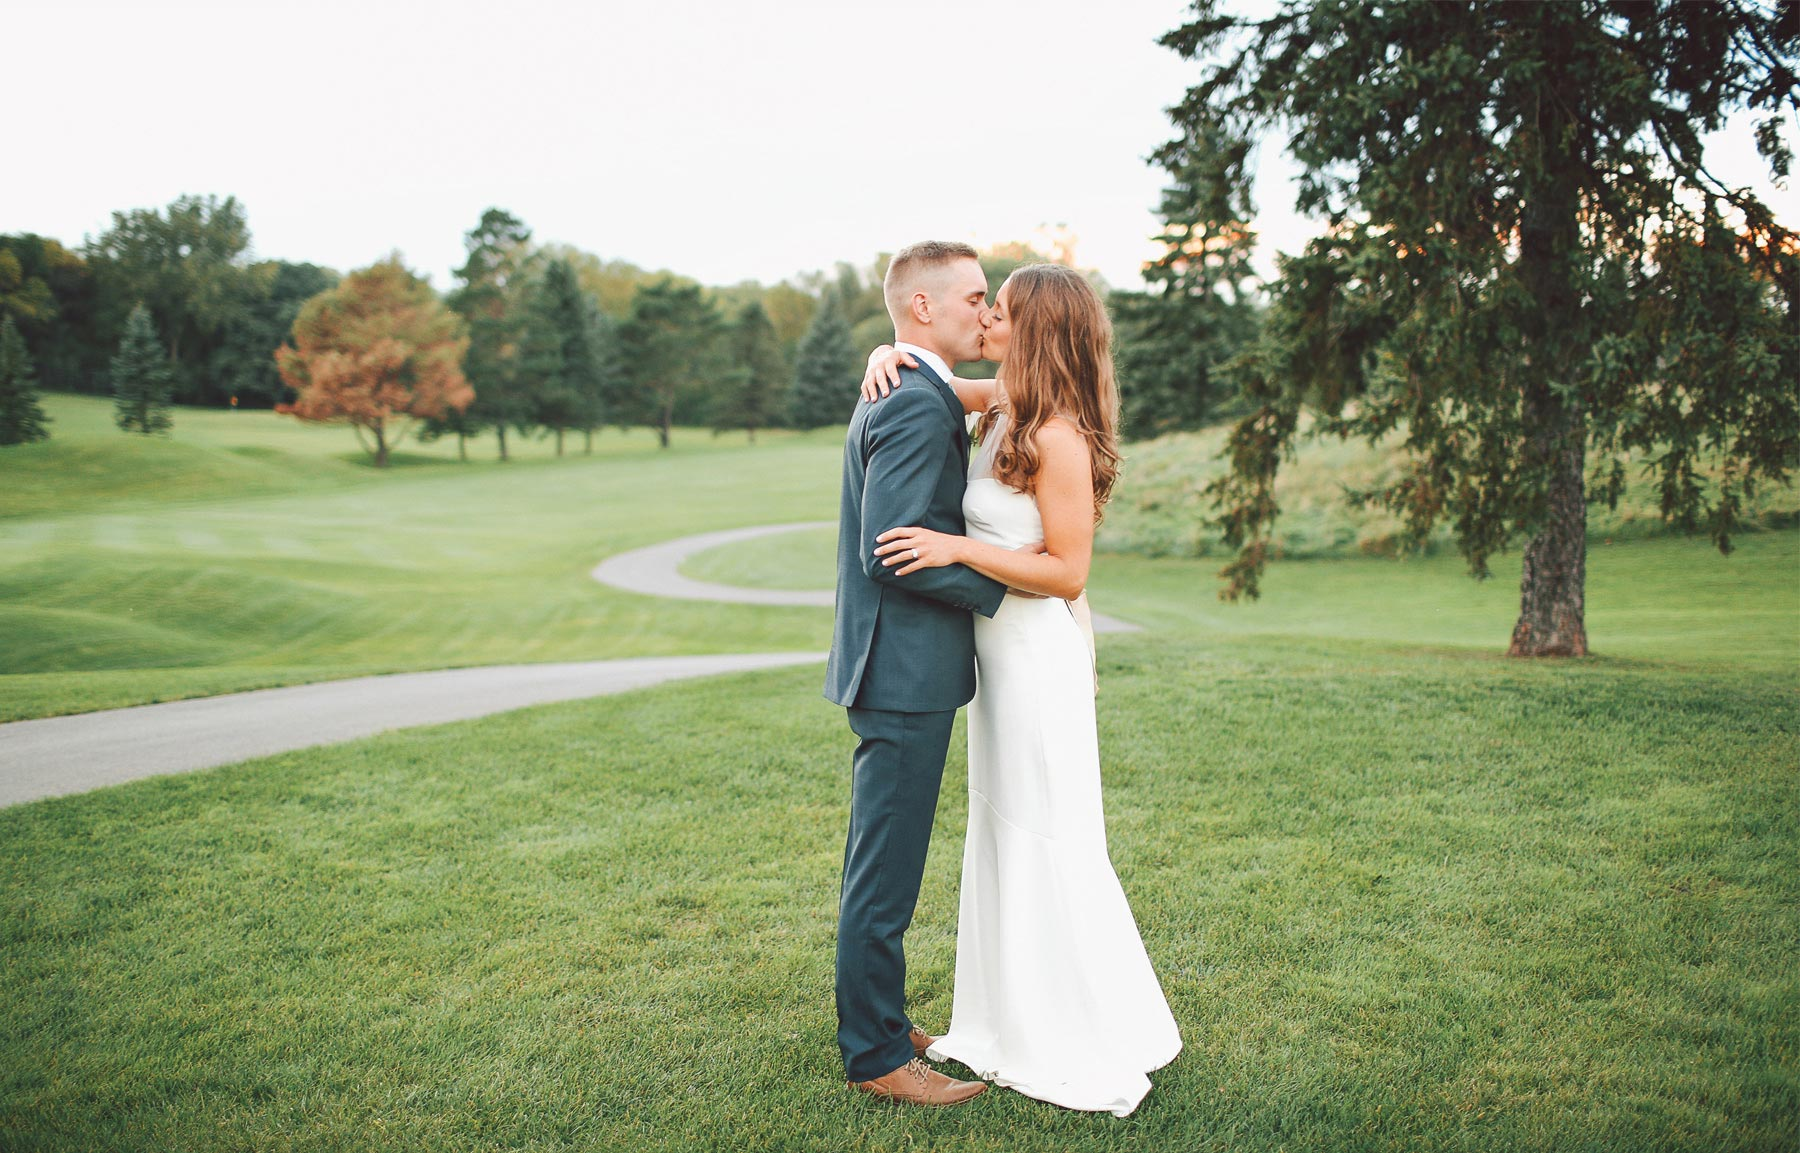 23-Dellwood-Minnesota-Wedding-Photographer-by-Andrew-Vick-Photography-Summer-Country-Club-Reception-Bride-Groom-Golf-Course-Kiss-Vintage-Sarah-and-Landon.jpg